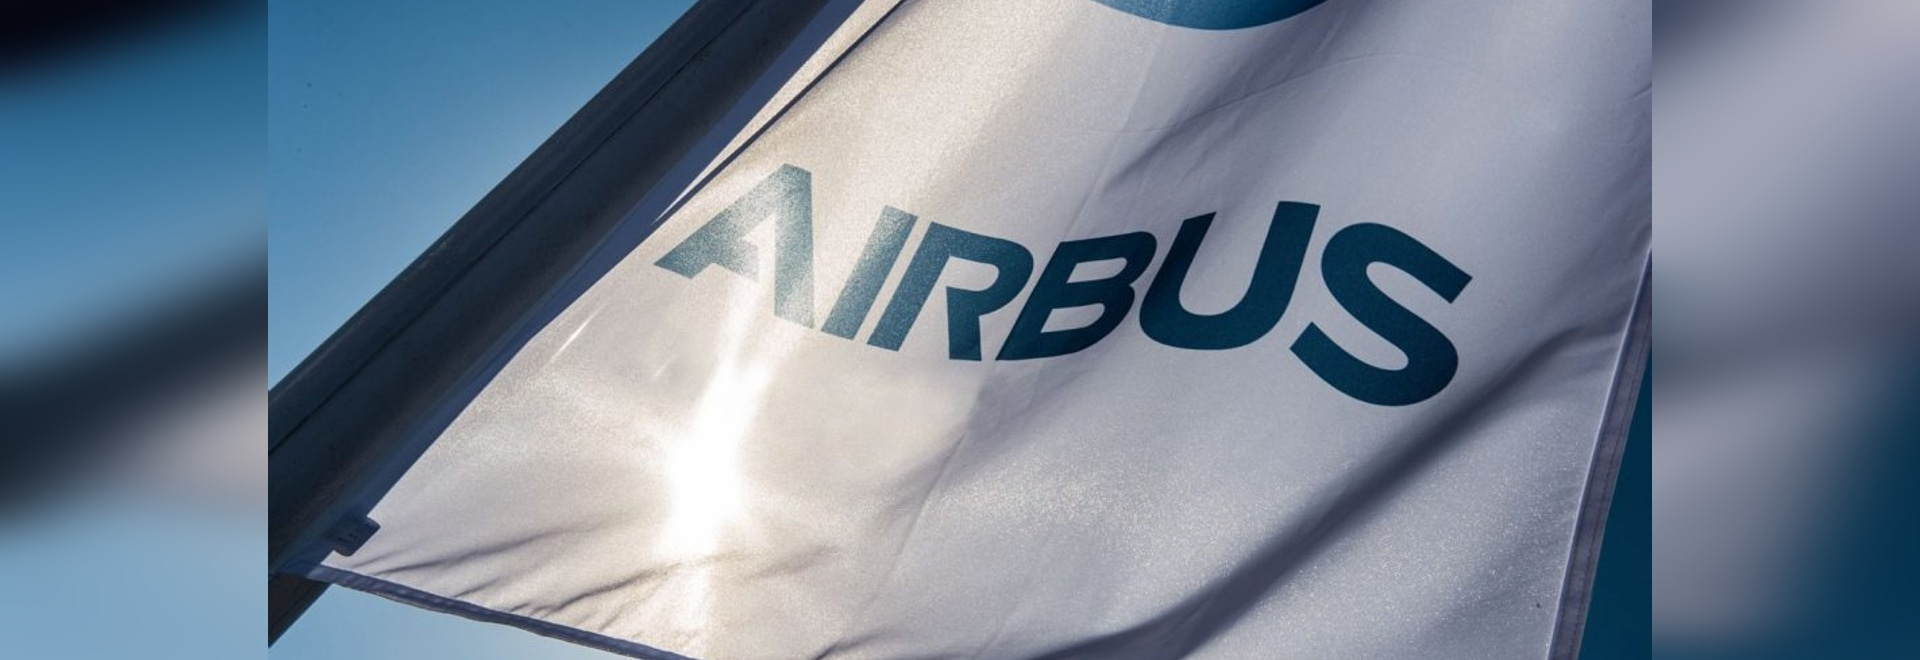 Airbus extends its training offer with new composite training